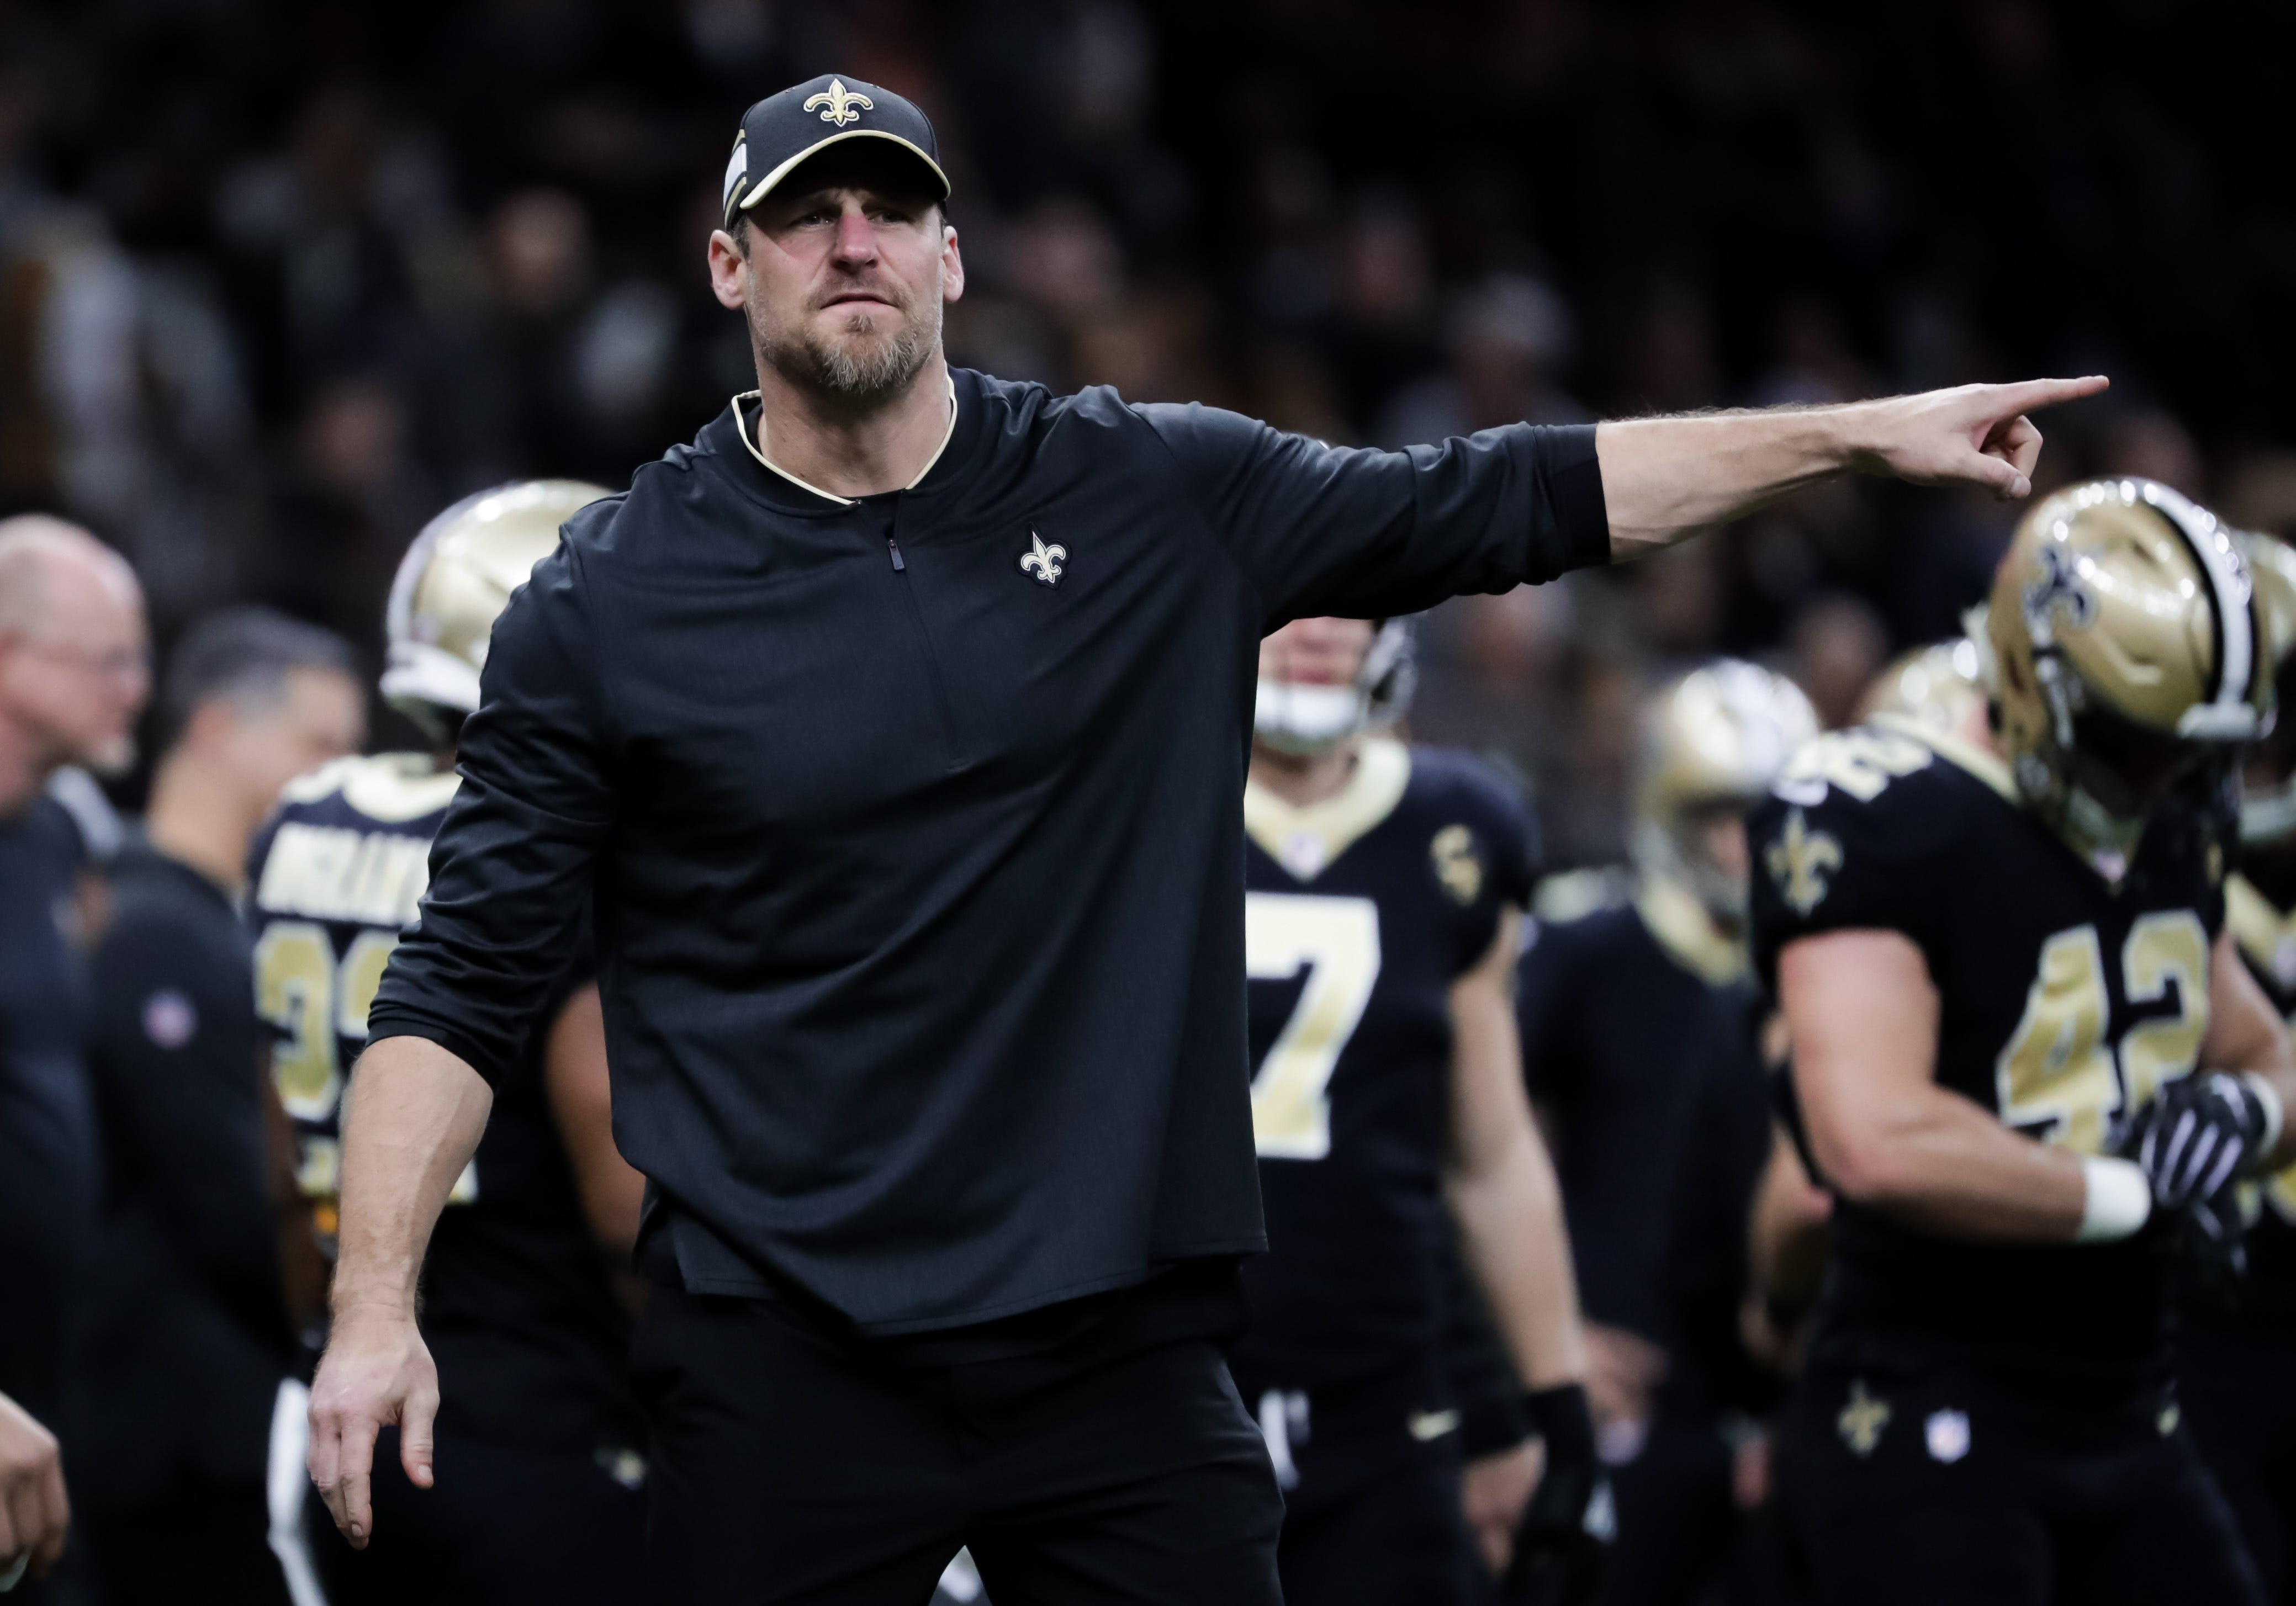 New Orleans Saints assistant coach and narrow-team coach Dan Campbell during the play-off match preliminary match against the Philadelphia Eagles at the Mercedes-Benz Super Dome, January 13, 2019.